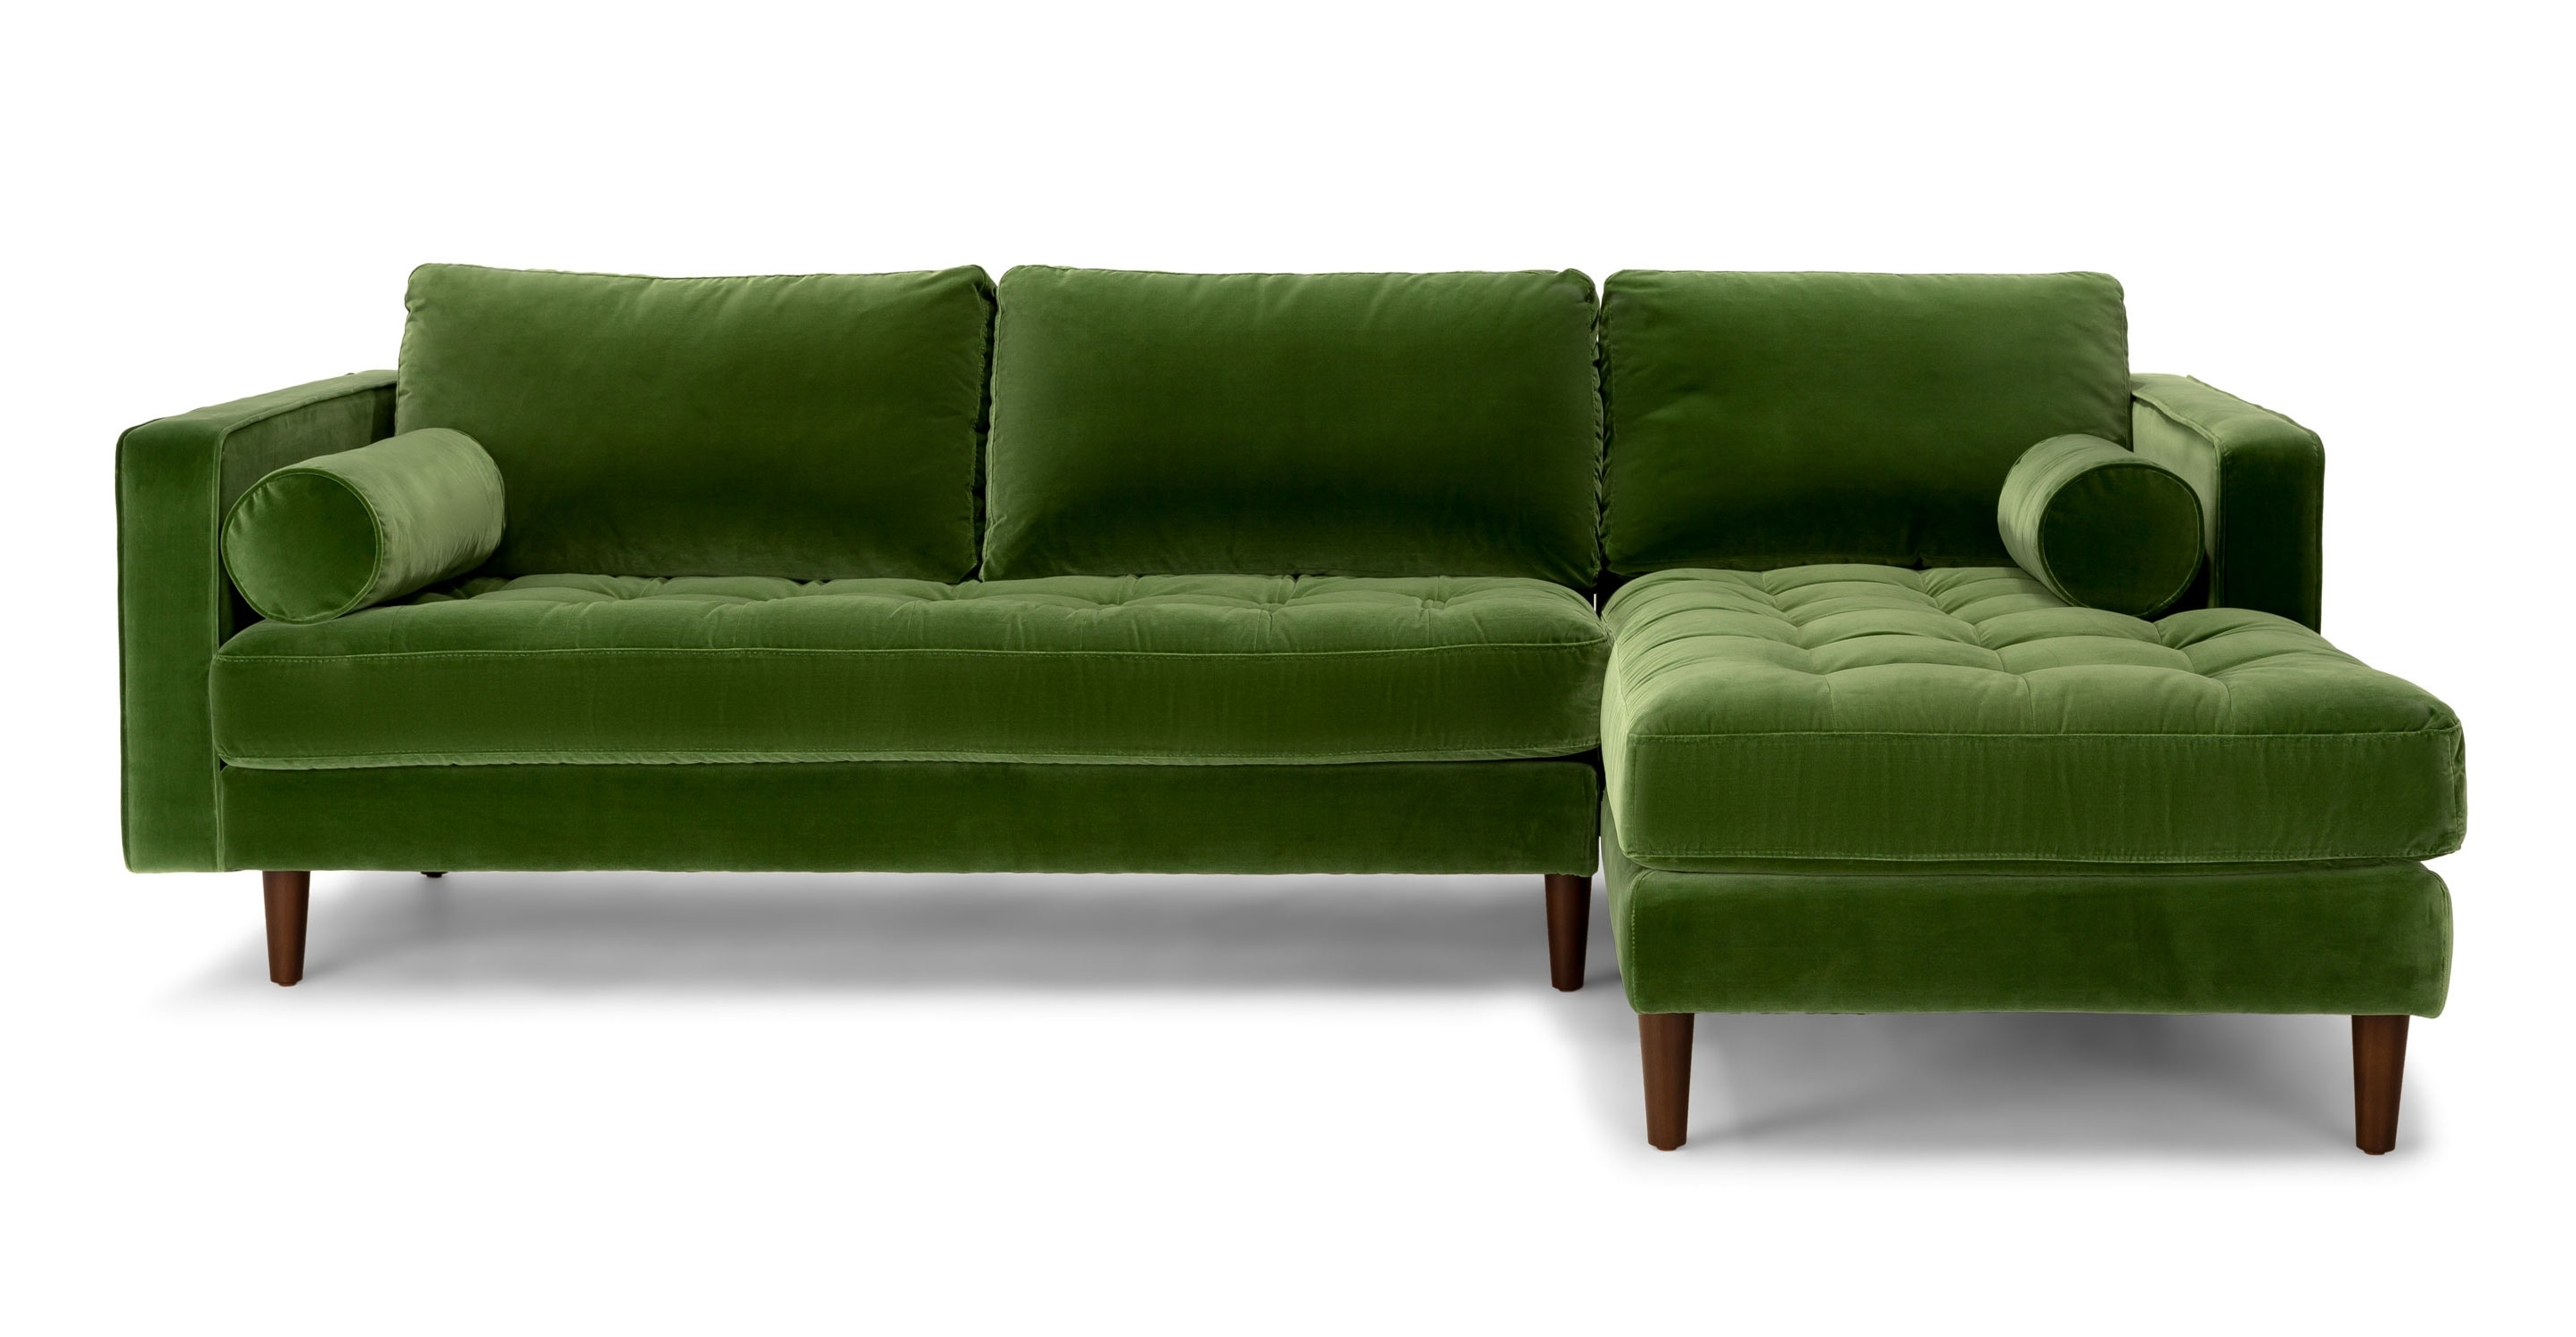 Green Sectional Sofas With Regard To Widely Used Olive Green Chenille Fabrical Sofa Seafoam Emerald Leather Sage (View 2 of 15)